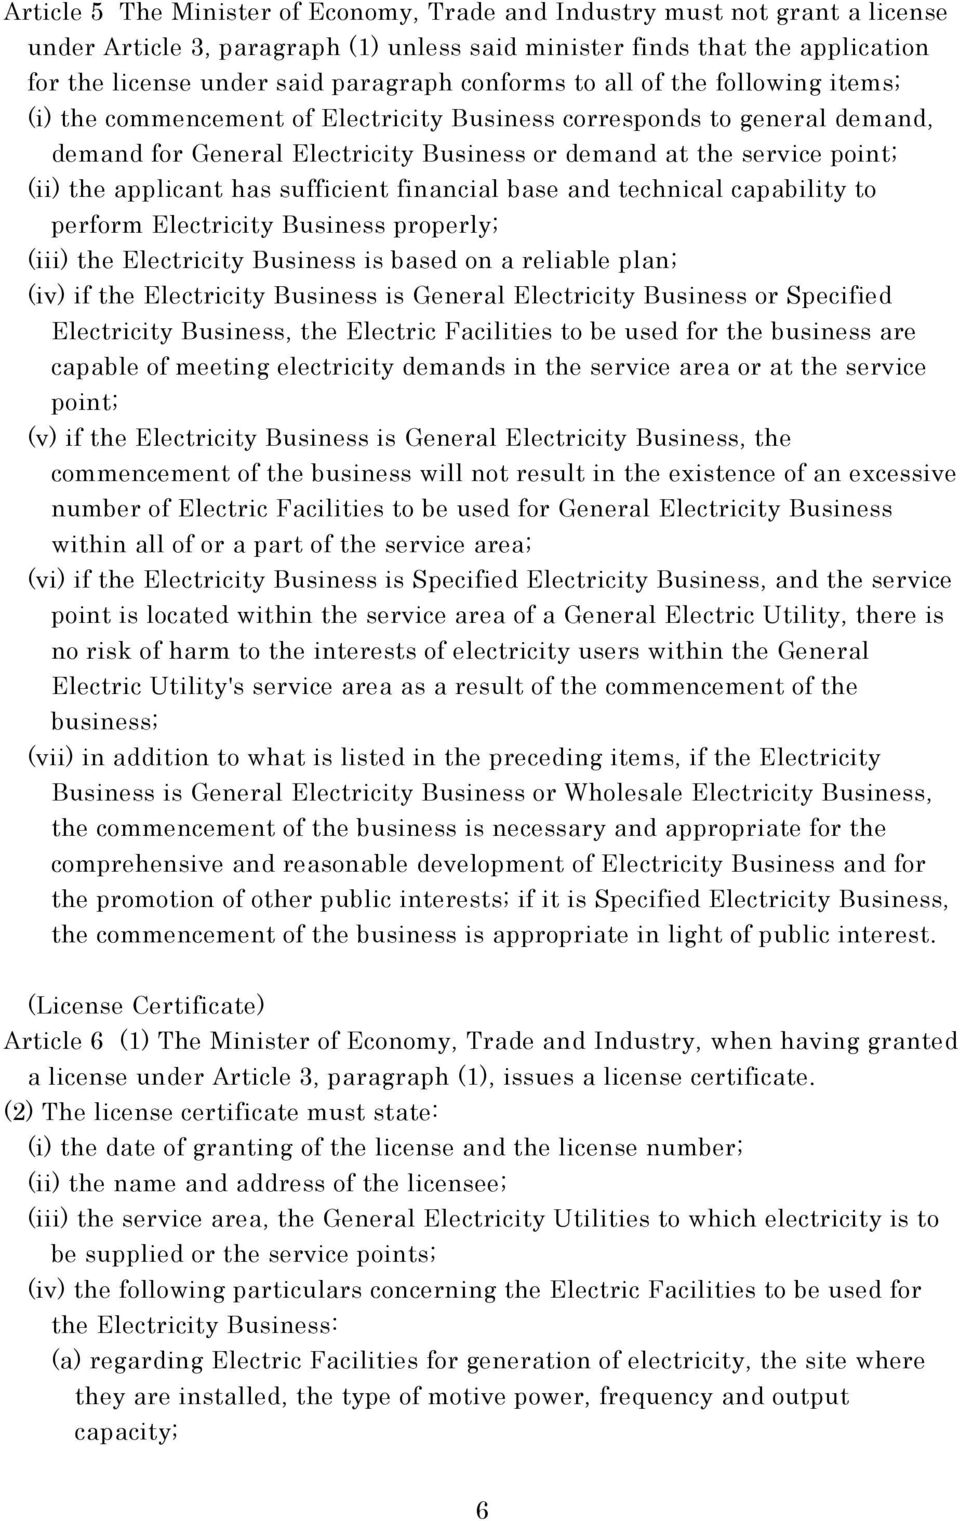 applicant has sufficient financial base and technical capability to perform Electricity Business properly; (iii) the Electricity Business is based on a reliable plan; (iv) if the Electricity Business